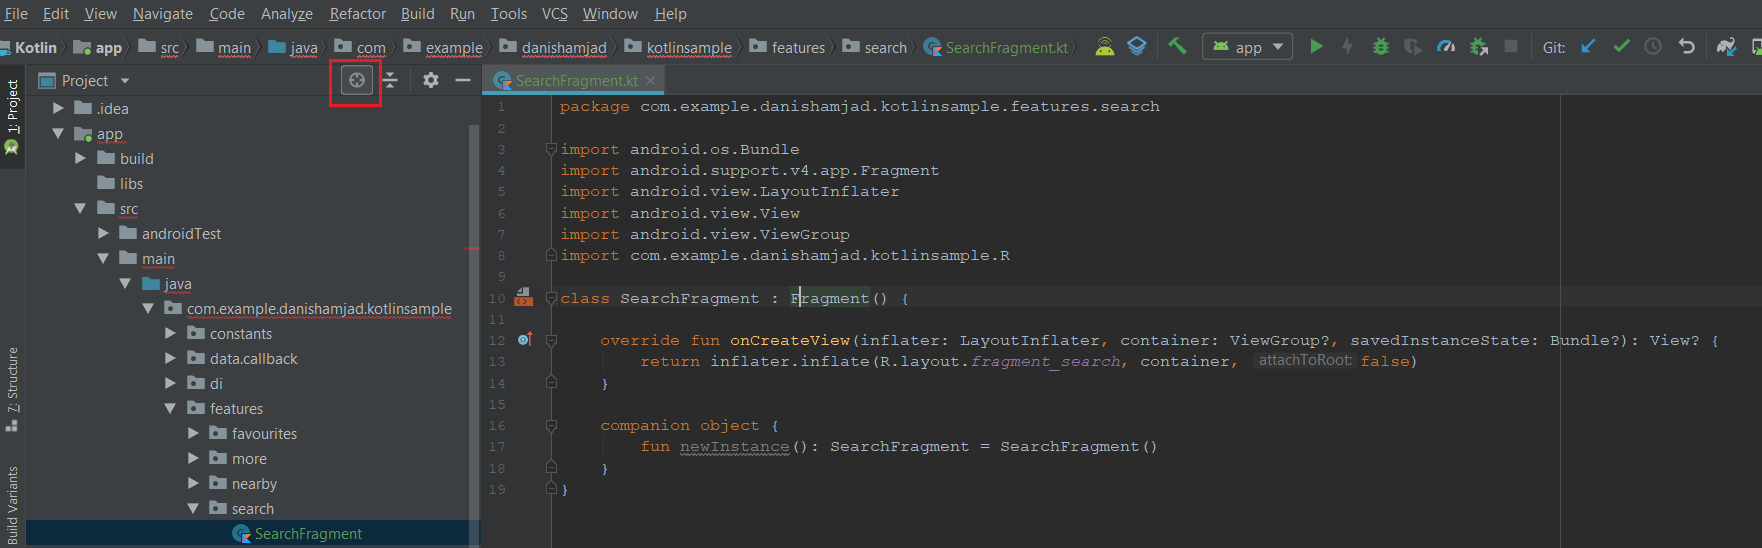 application class in android studio